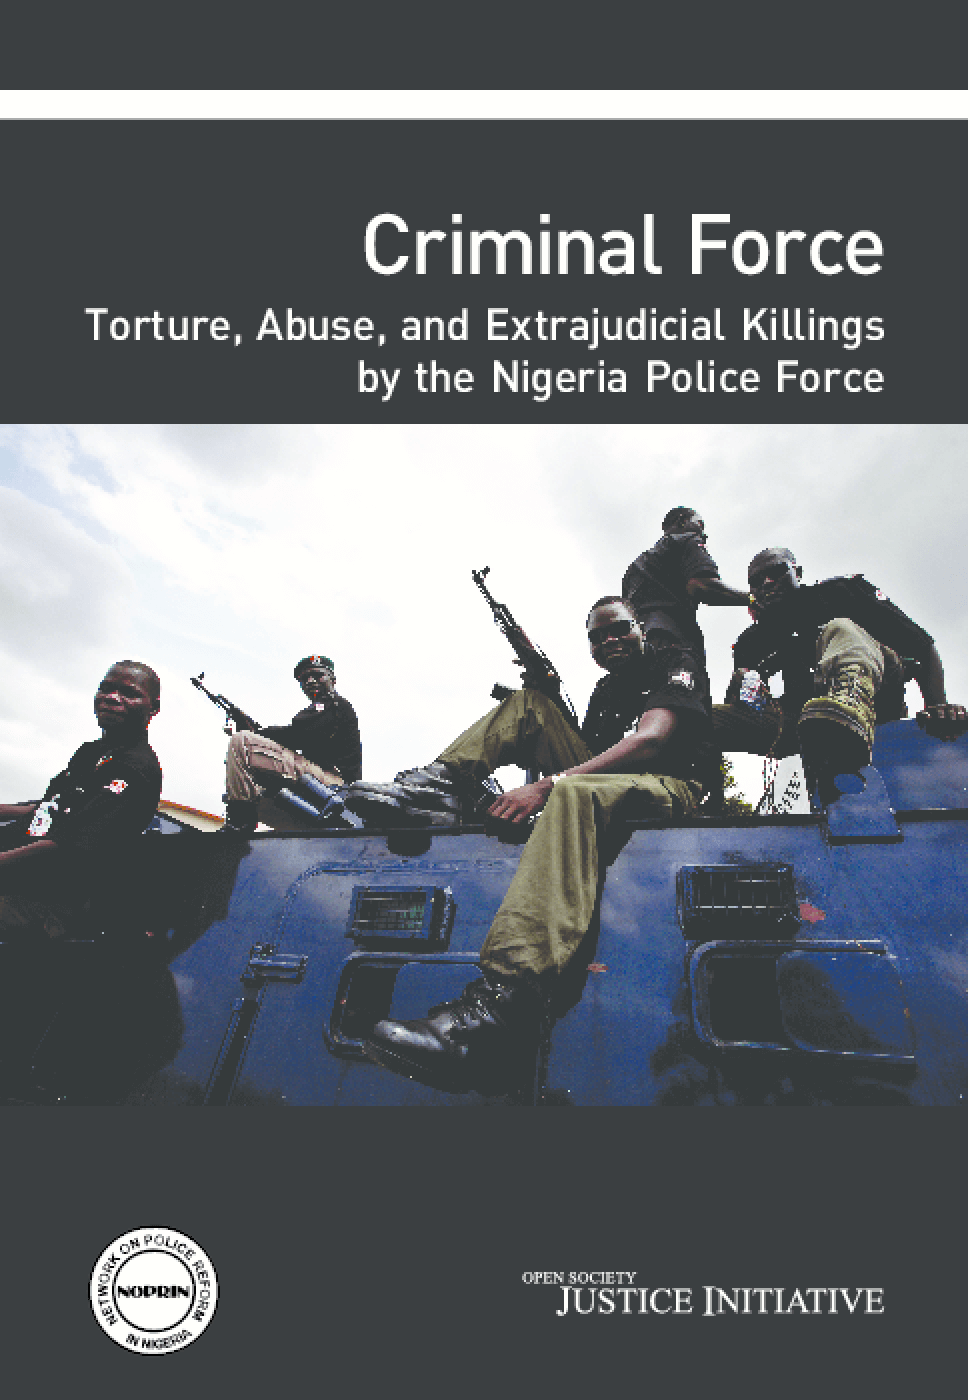 Criminal Force: Torture, Abuse, and Extrajudicial Killings by the Nigeria Police Force